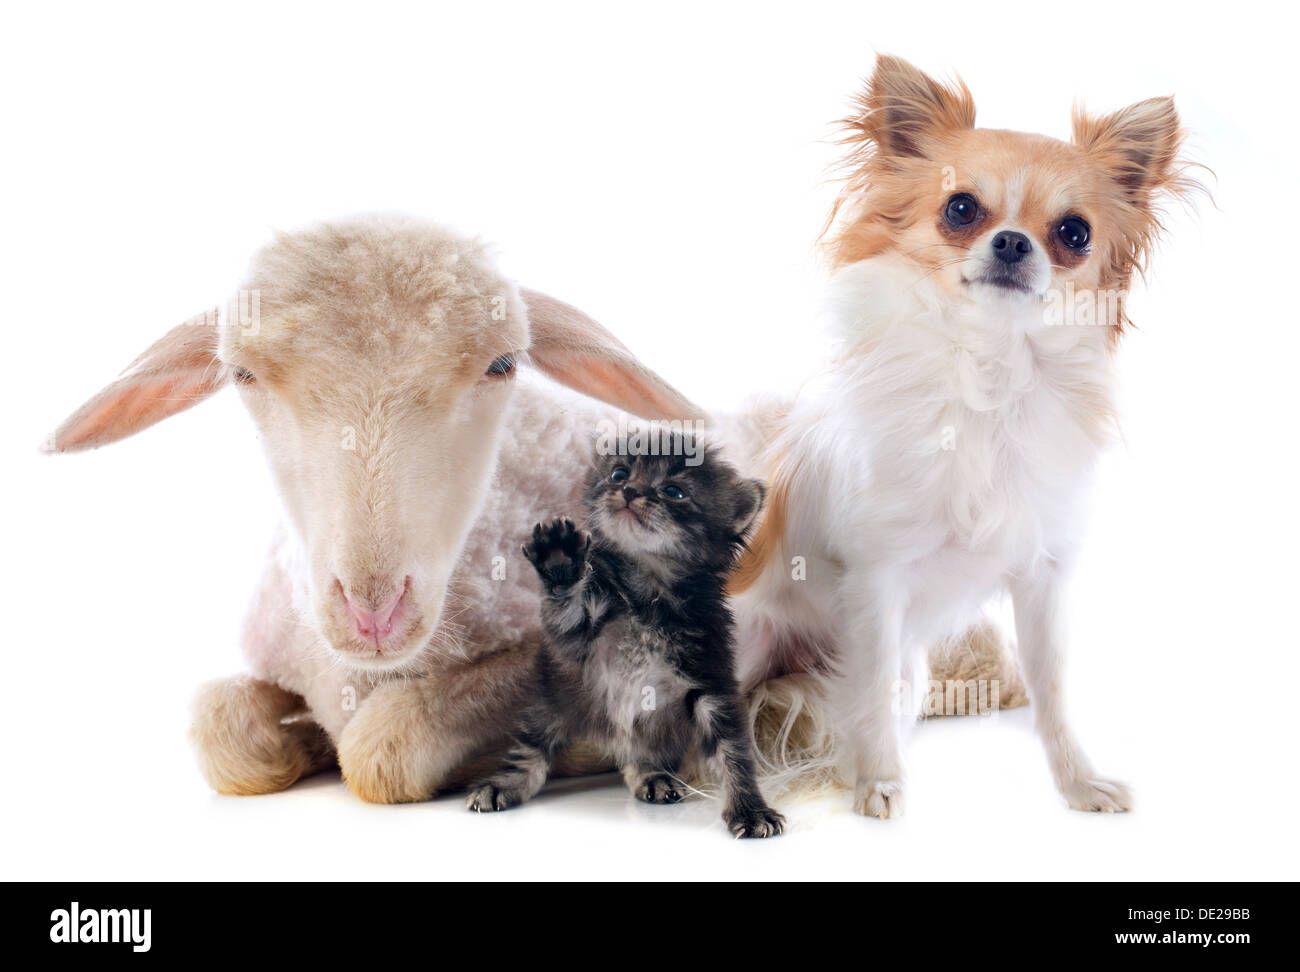 young lamb, kitten and chihuahua in front of white background - Stock Image